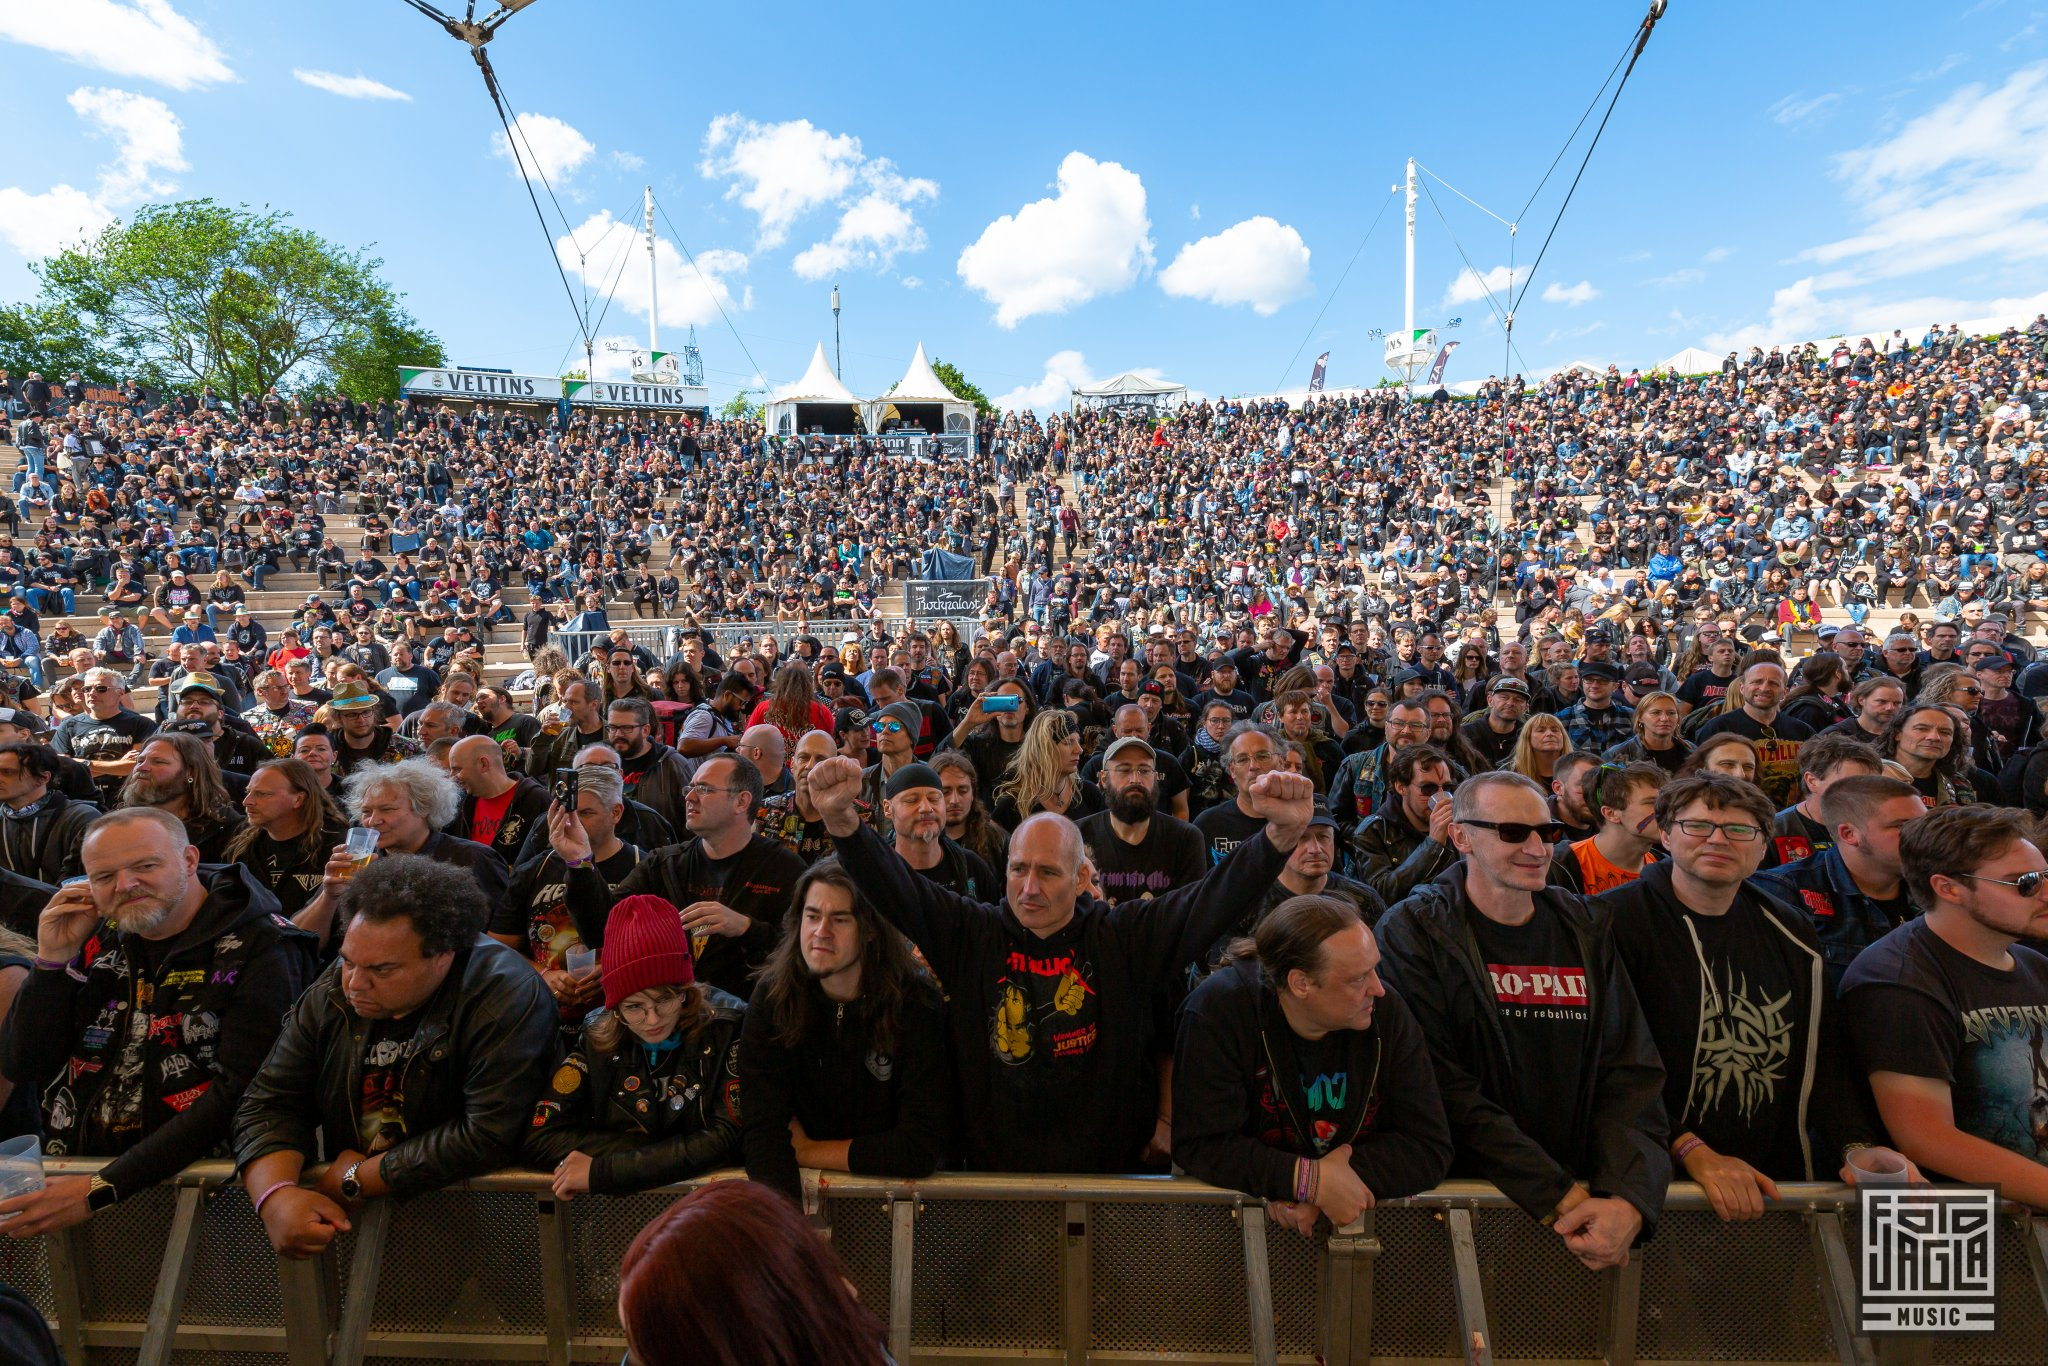 Zuschauermenge